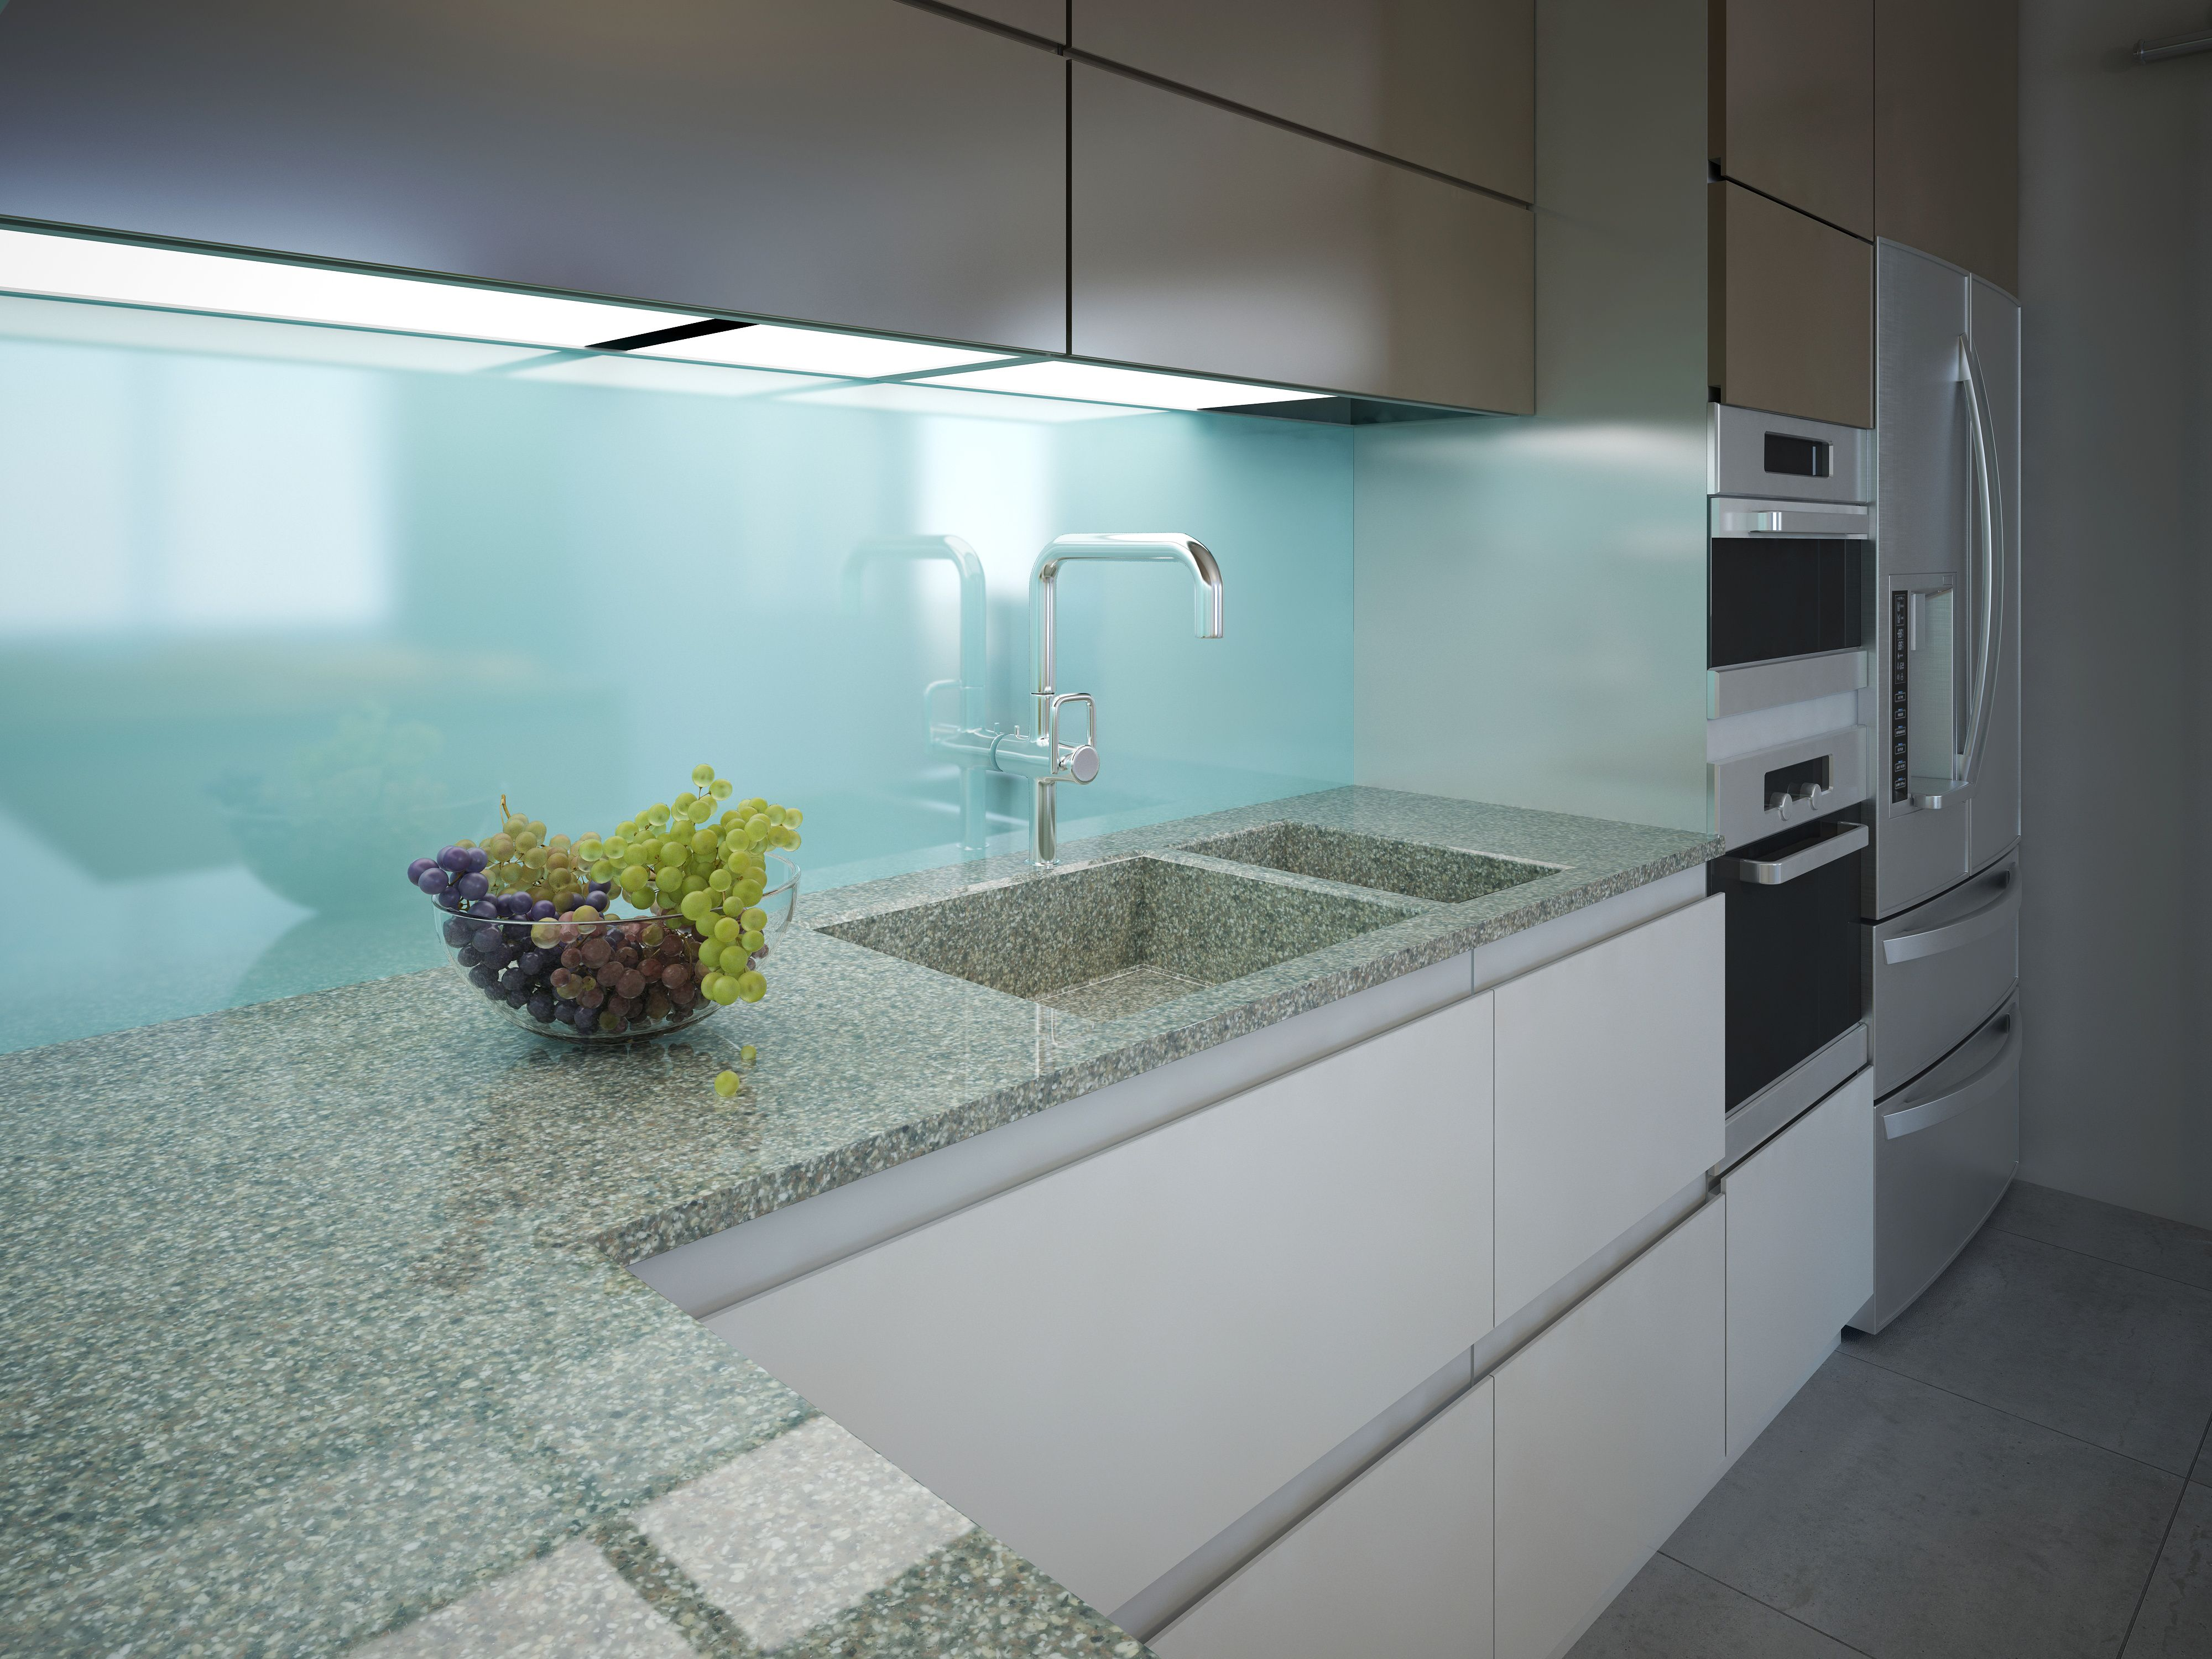 Polymer Kitchen Cabinets Pros And Cons Anipinan Kitchen